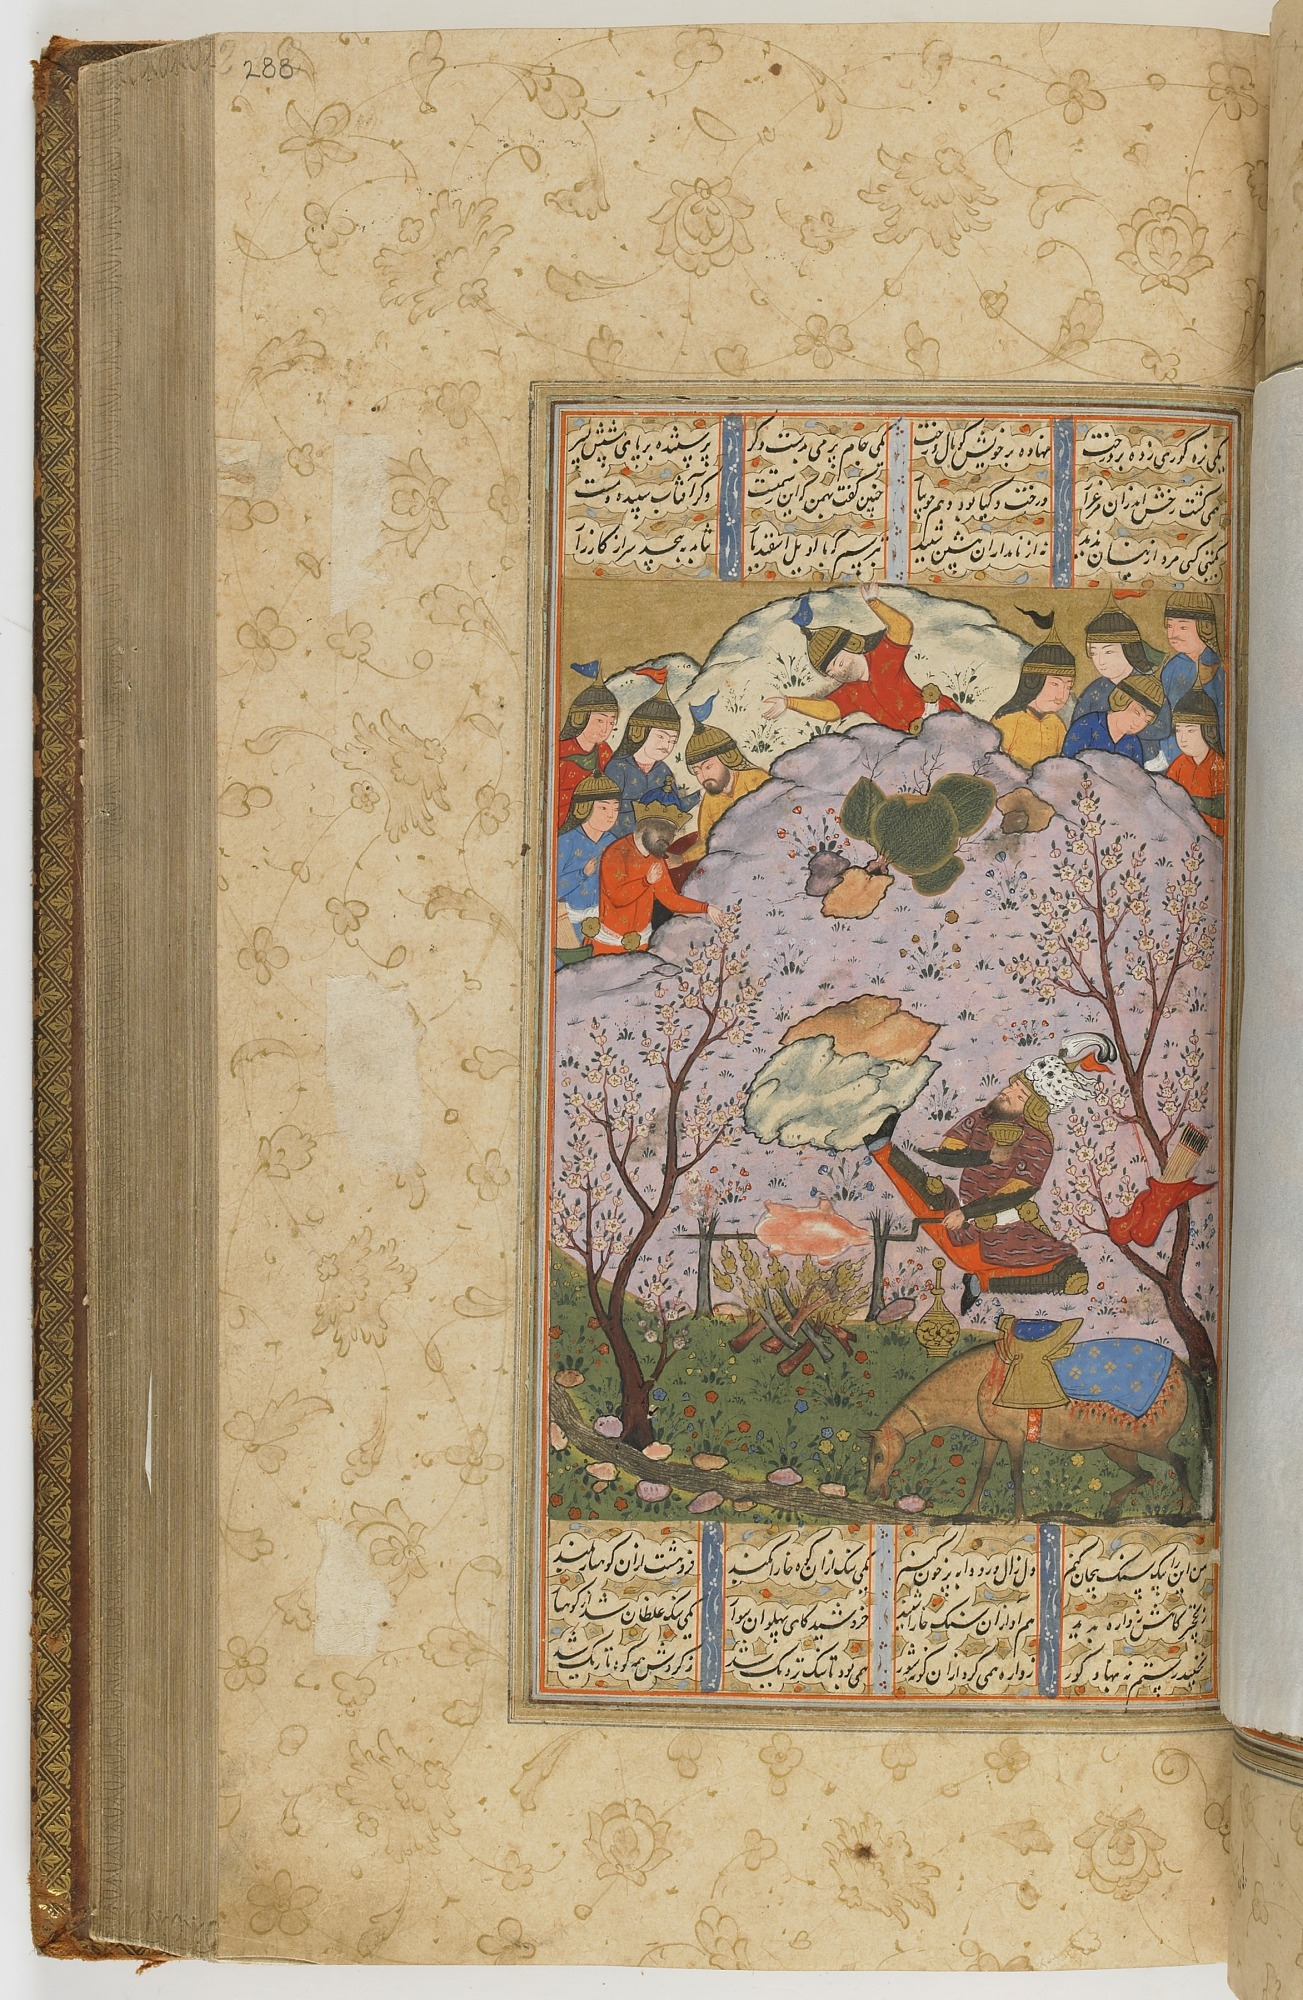 folio 288 recto: The Shahnama (Book of kings) by Firdausi (d. 1020)